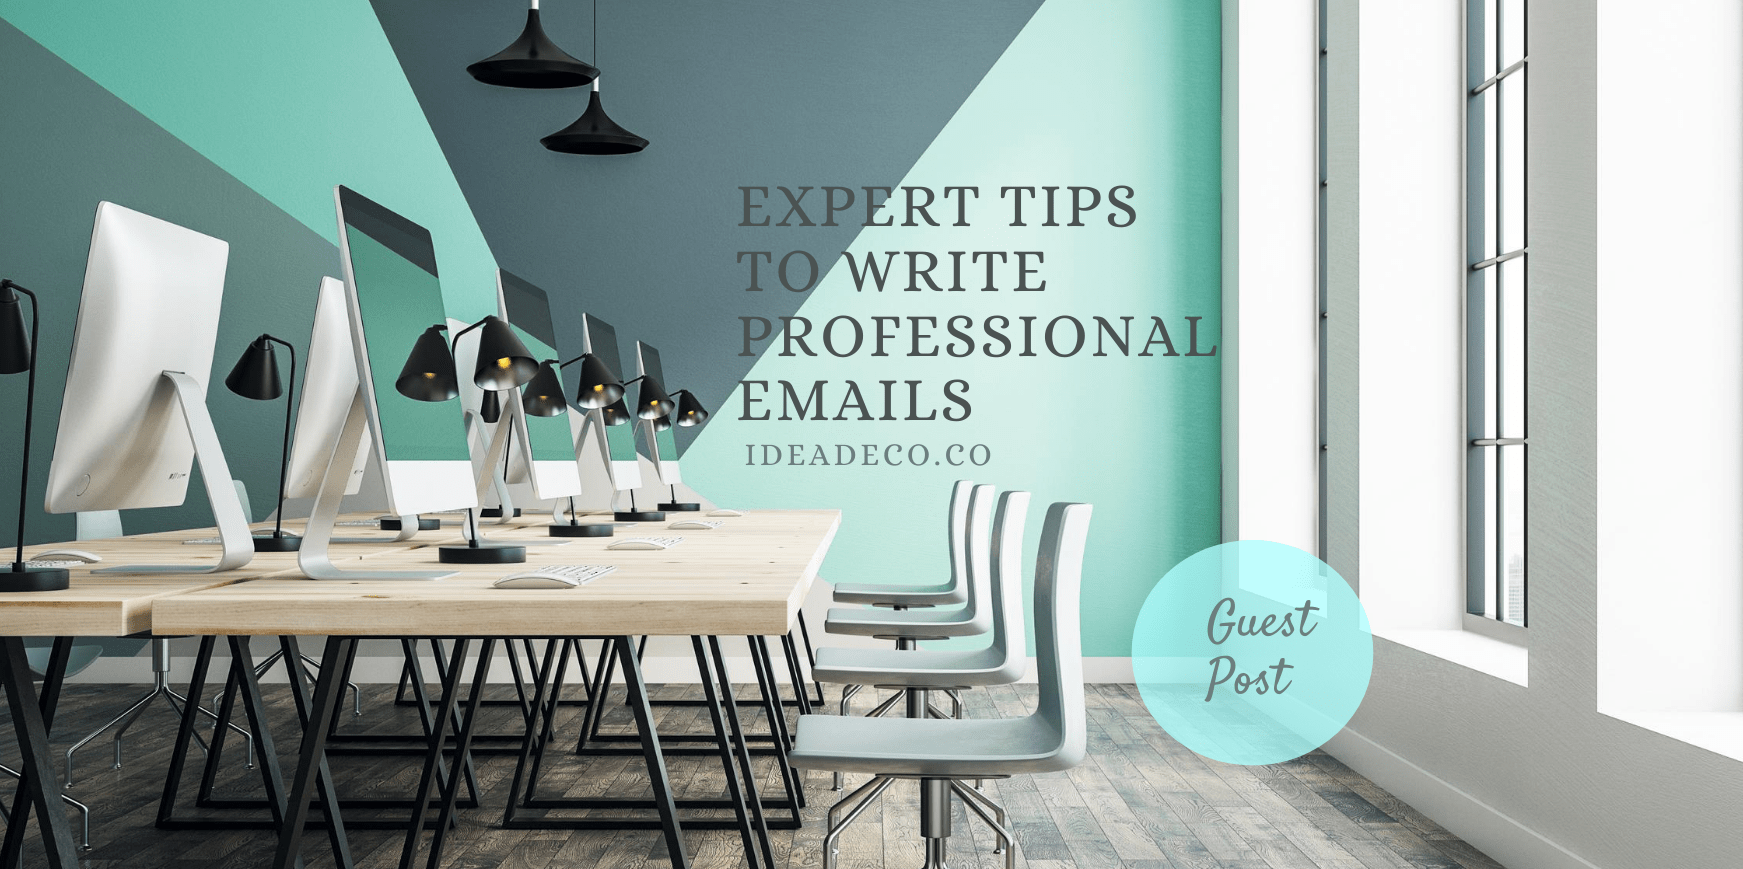 Expert Tips From a Pro Writer to Help You Write Professional Emails - Guest Post